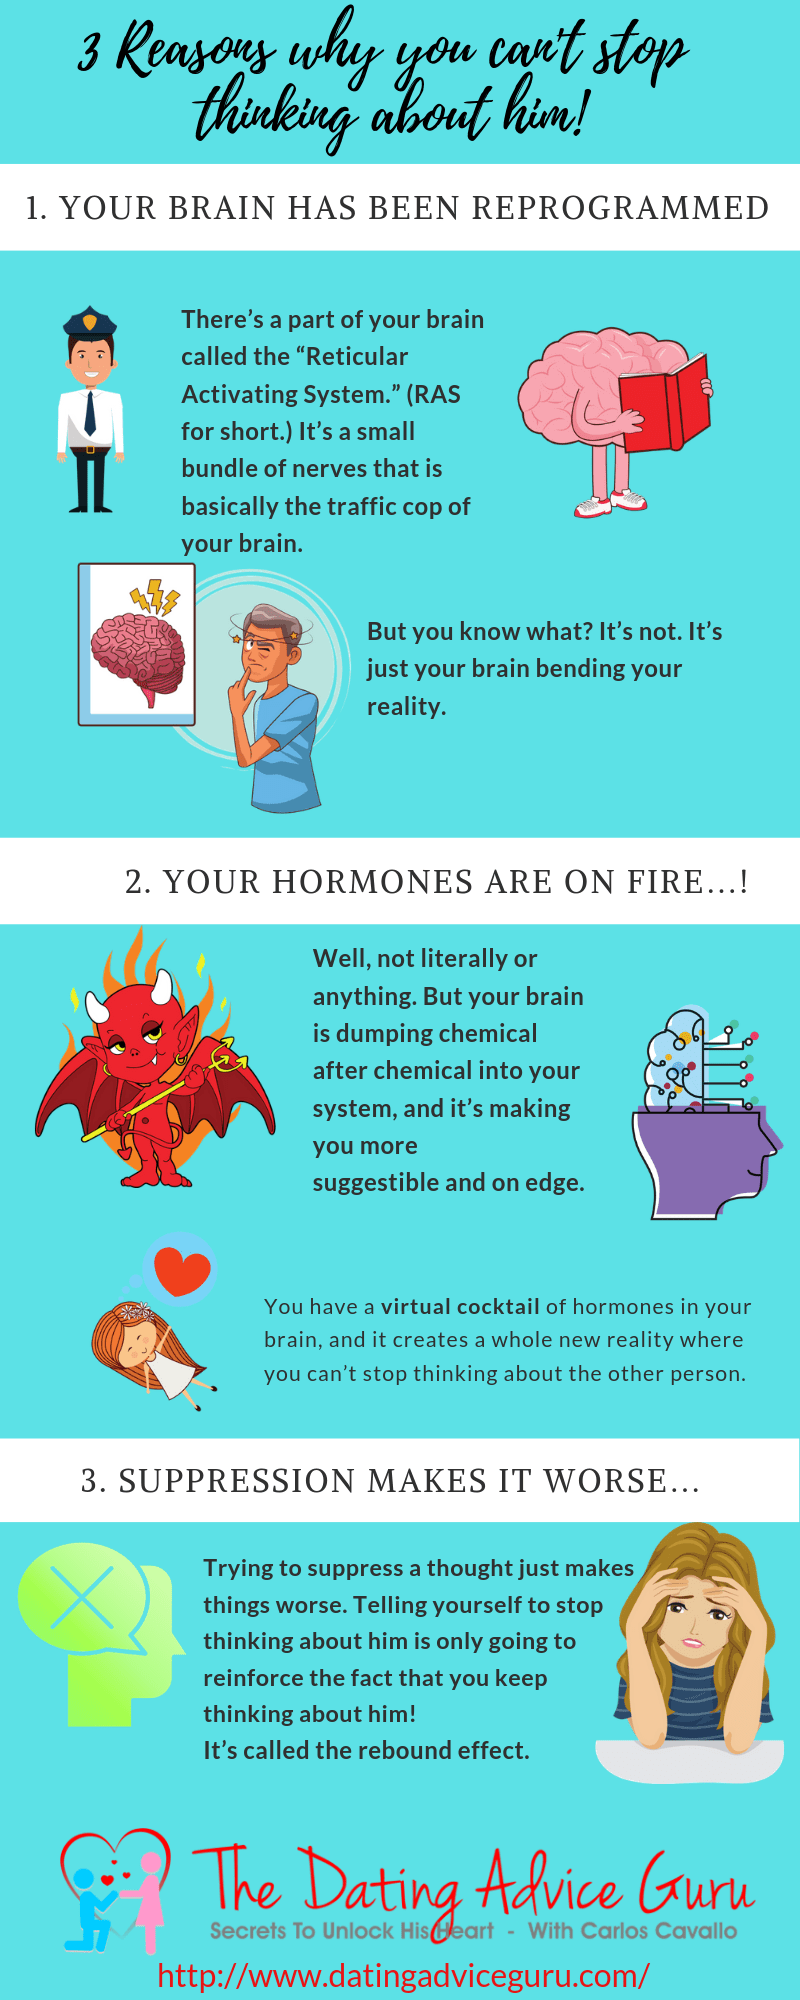 Why you can't stop thinking about him - infographic